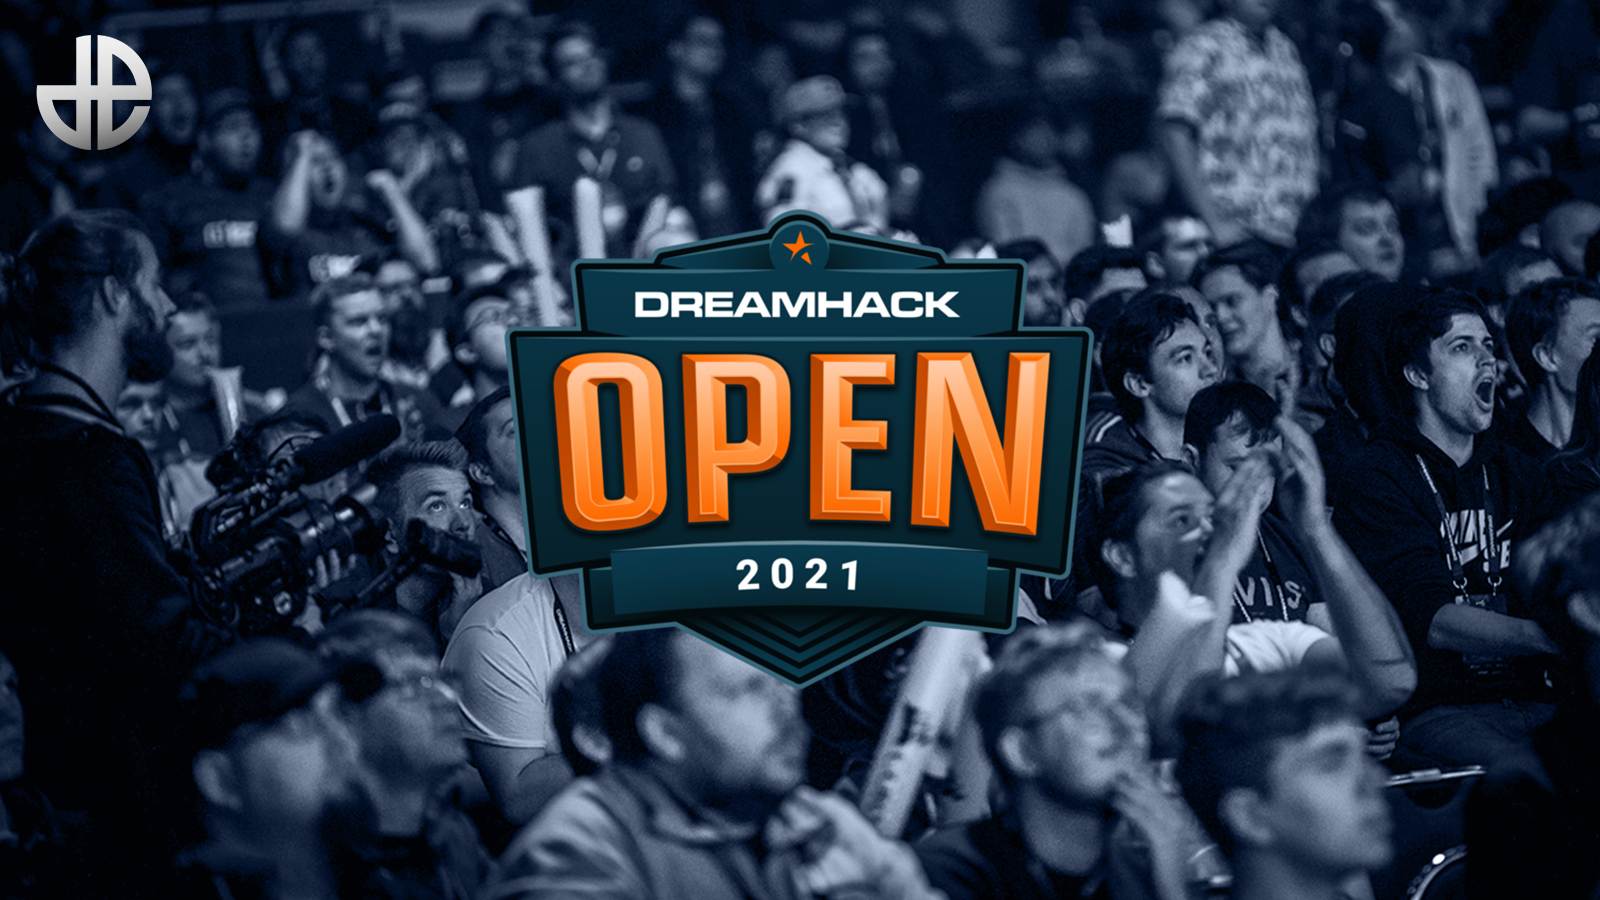 DreamHack Open January 2021